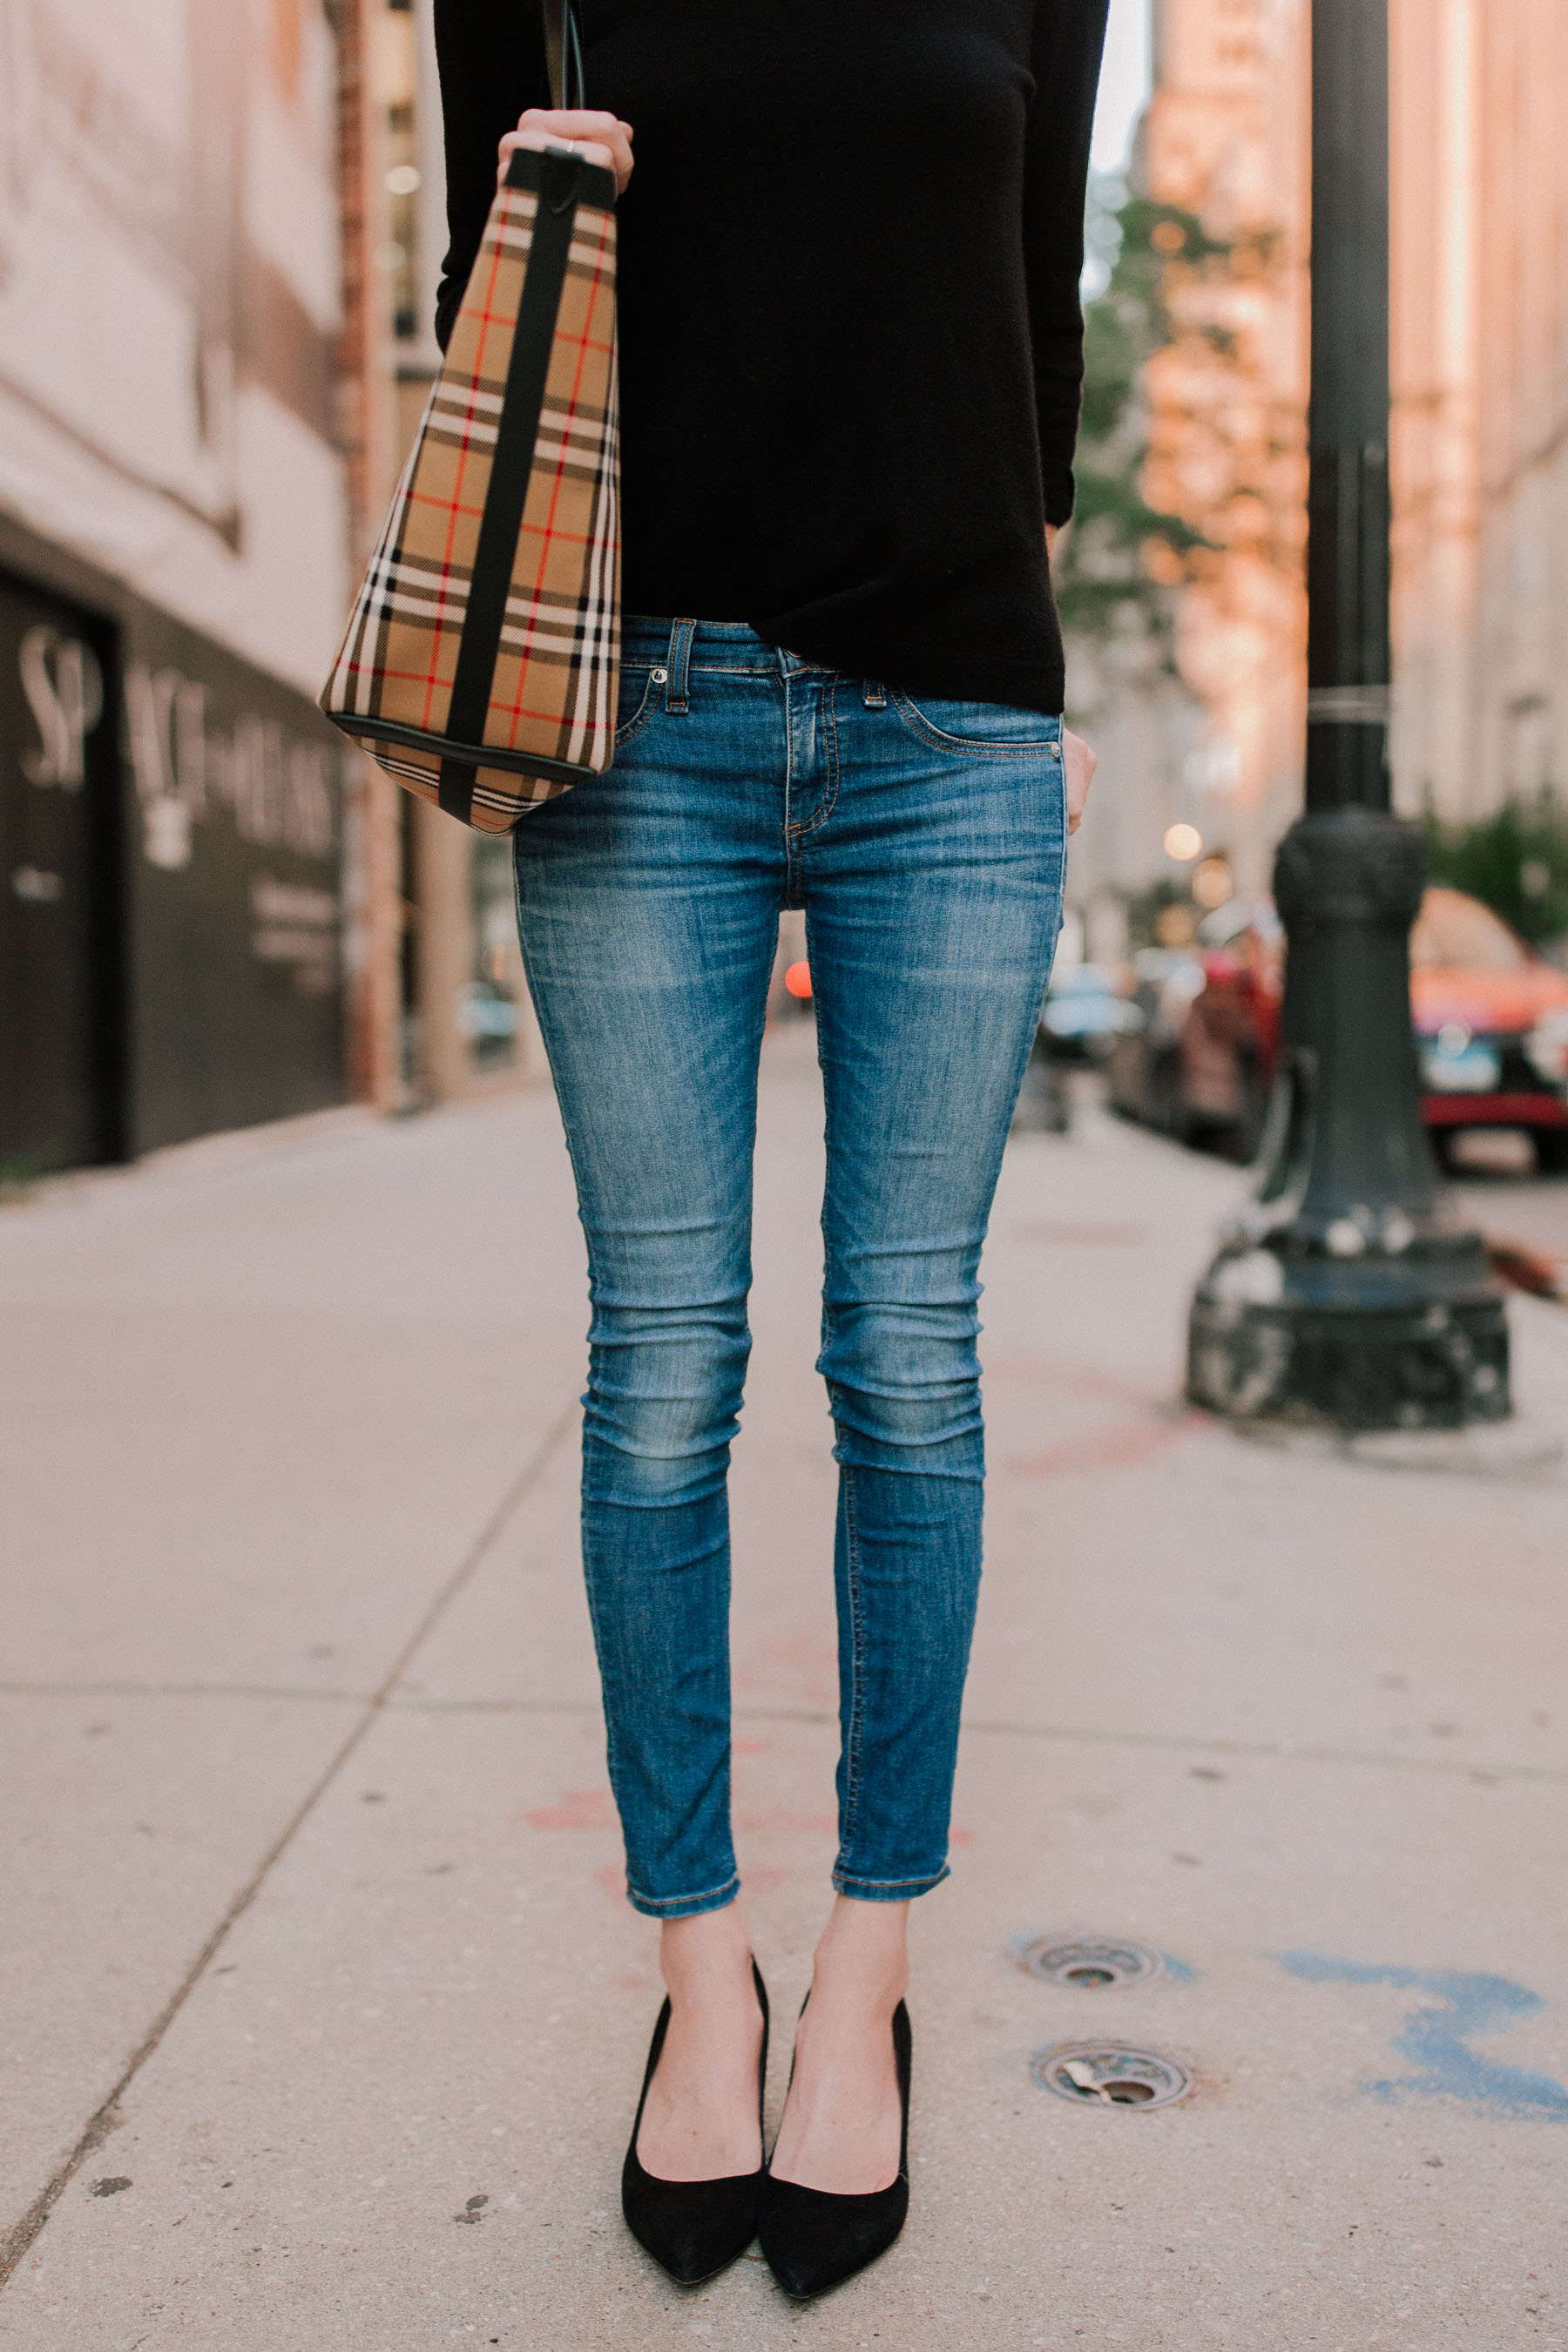 Rag & Bone Jeans / Kate Spade Pumps / Burberry Tote /  Black Cashmere Sweater - Kelly in the City